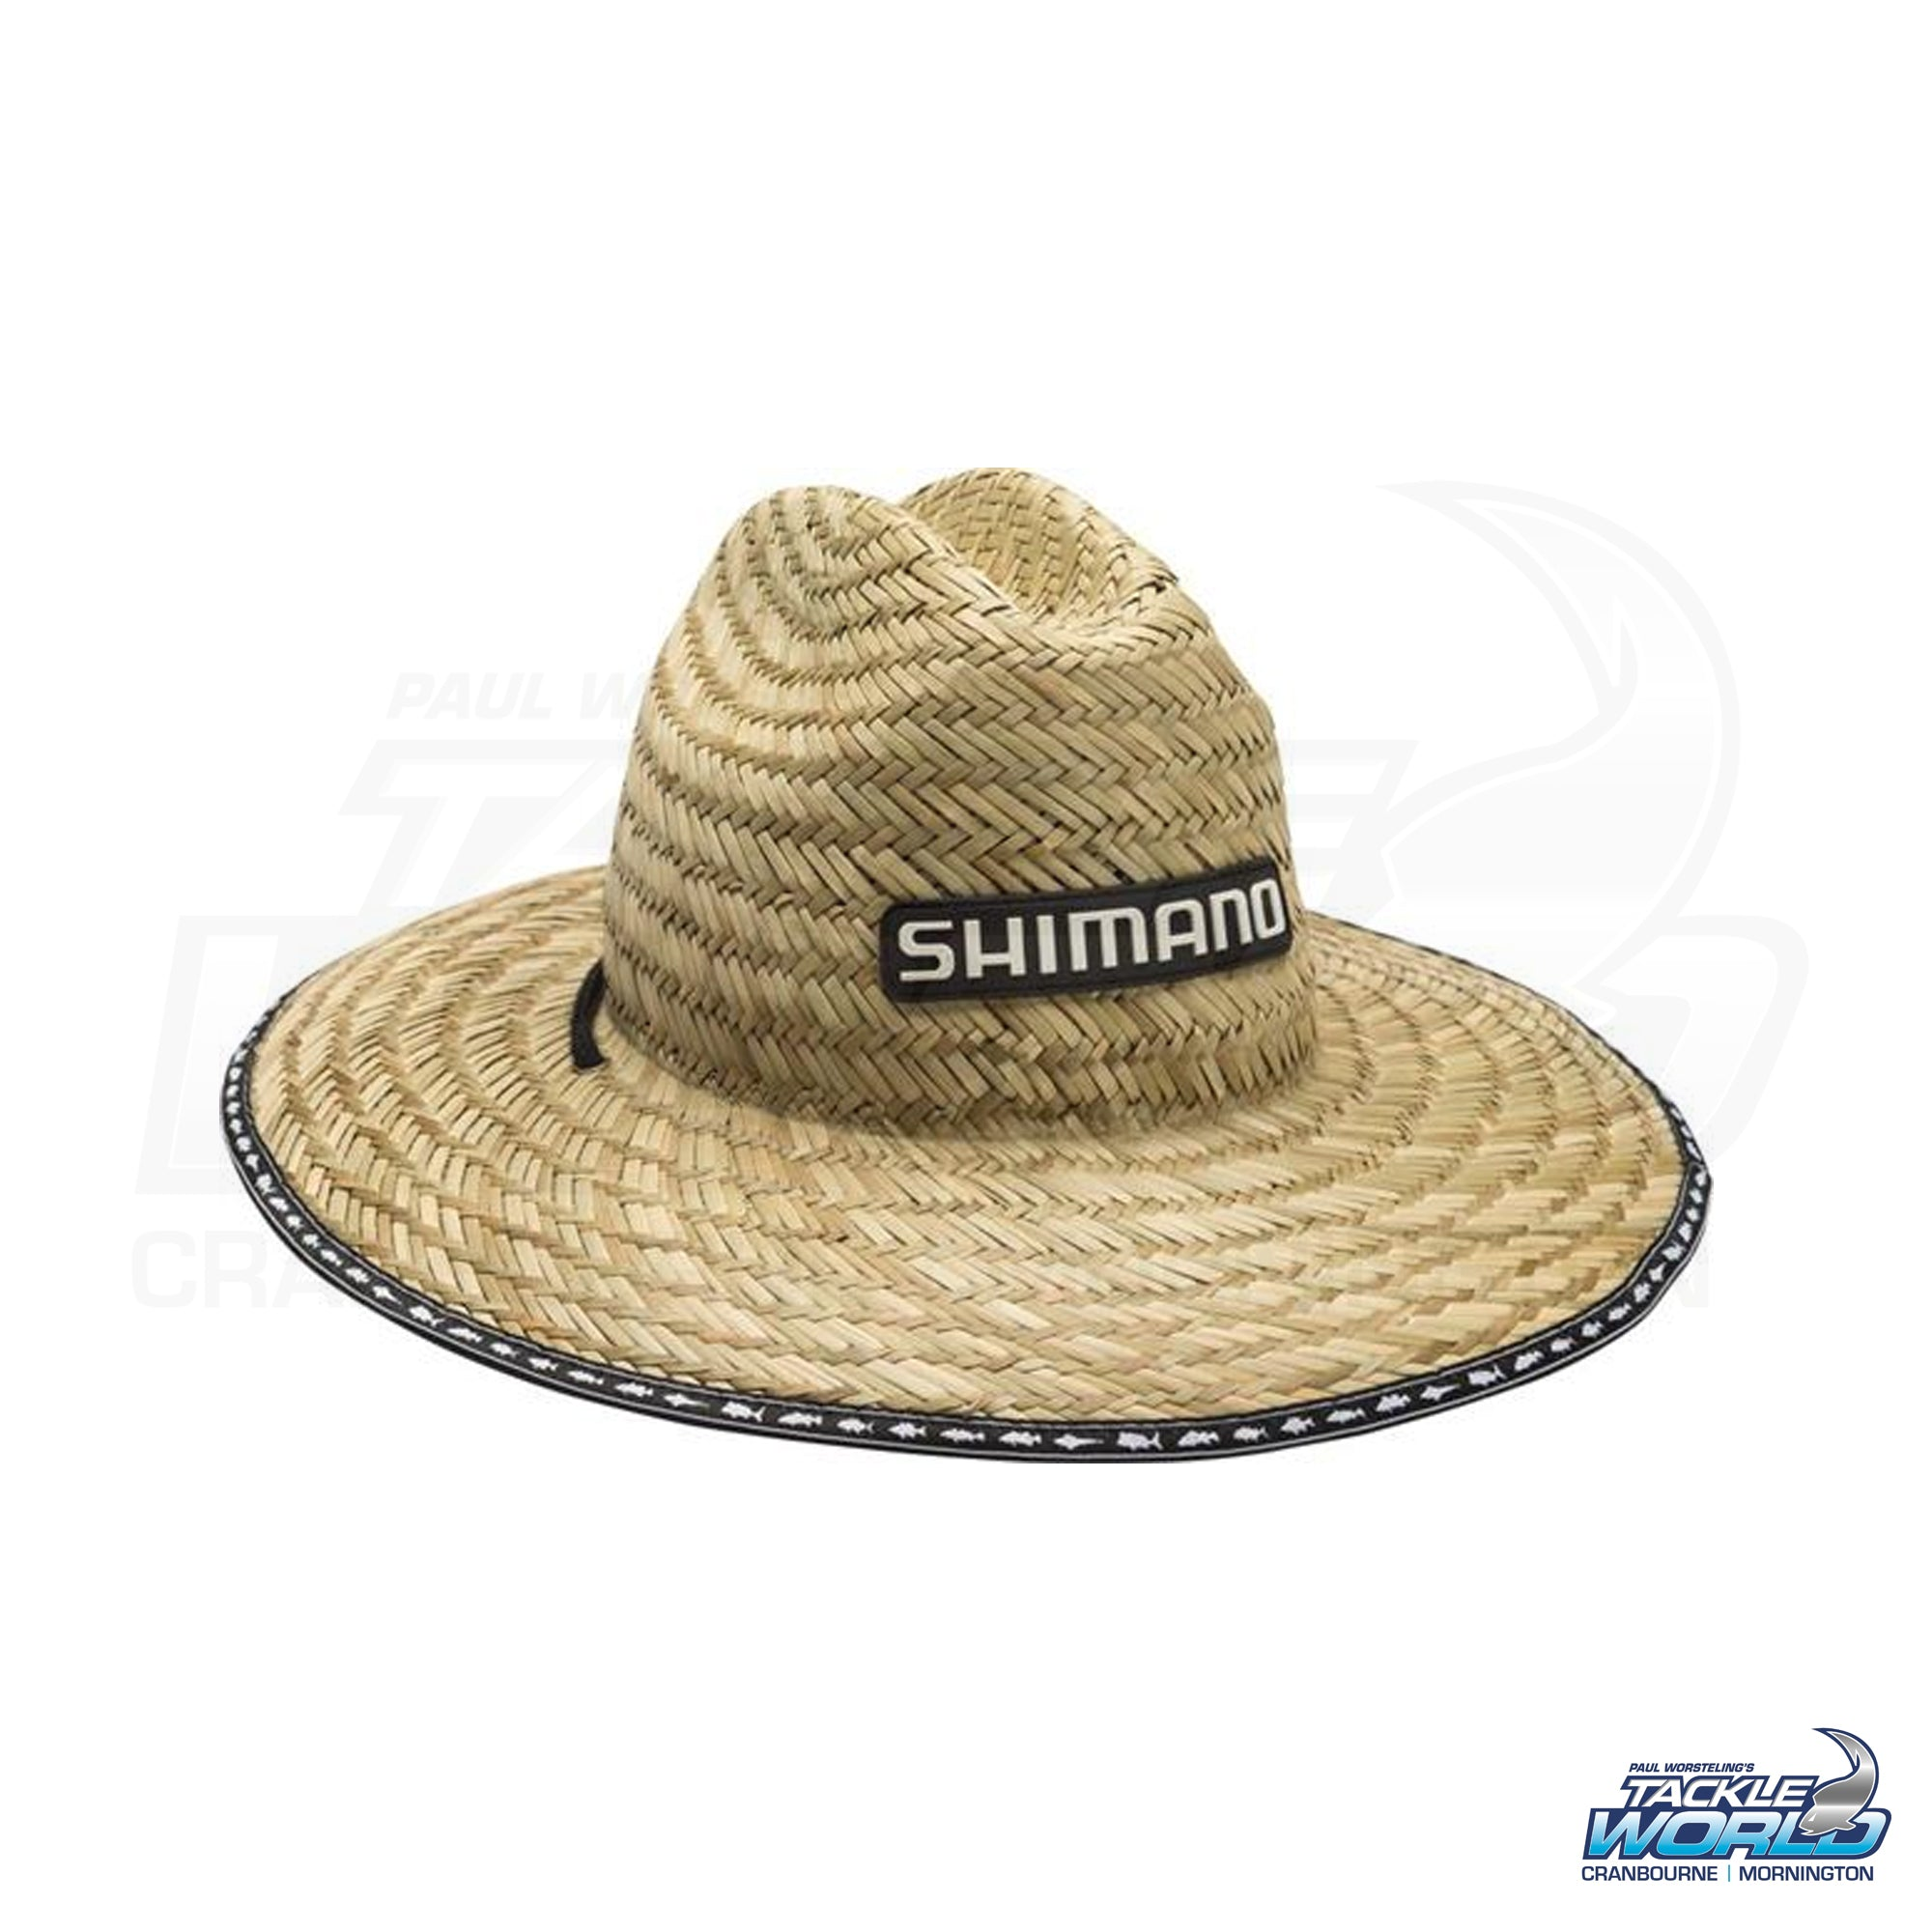 6d83cdc051a Shimano Straw Hat